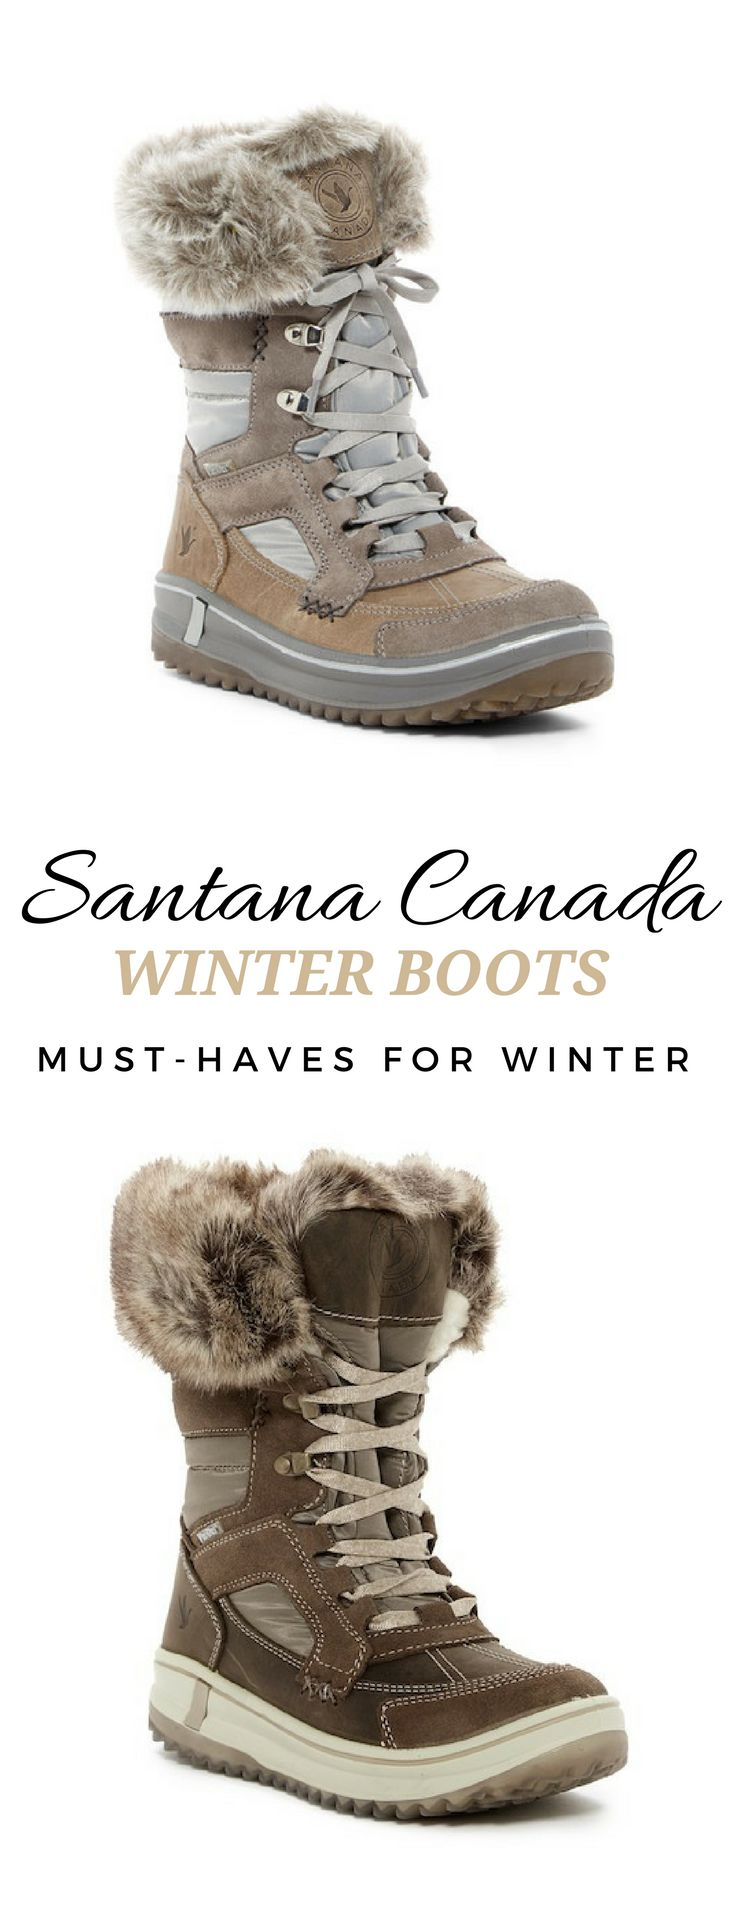 Perfect for that winter trip I'm planning up to Niagara Falls! Take on the worst winter weather in style and comfort with this sporty weatherproof boot. | winter boots, faux-fur, must have for winter, stay warm, waterproof boots, snow boots, insulated, nordstrom rack, Canada, Alaska, winter travel #boots #winterboots #winter #winterfashion #winterstyle #winteroutfits #ad #nordstromrack #alaskatravel #canadatravel